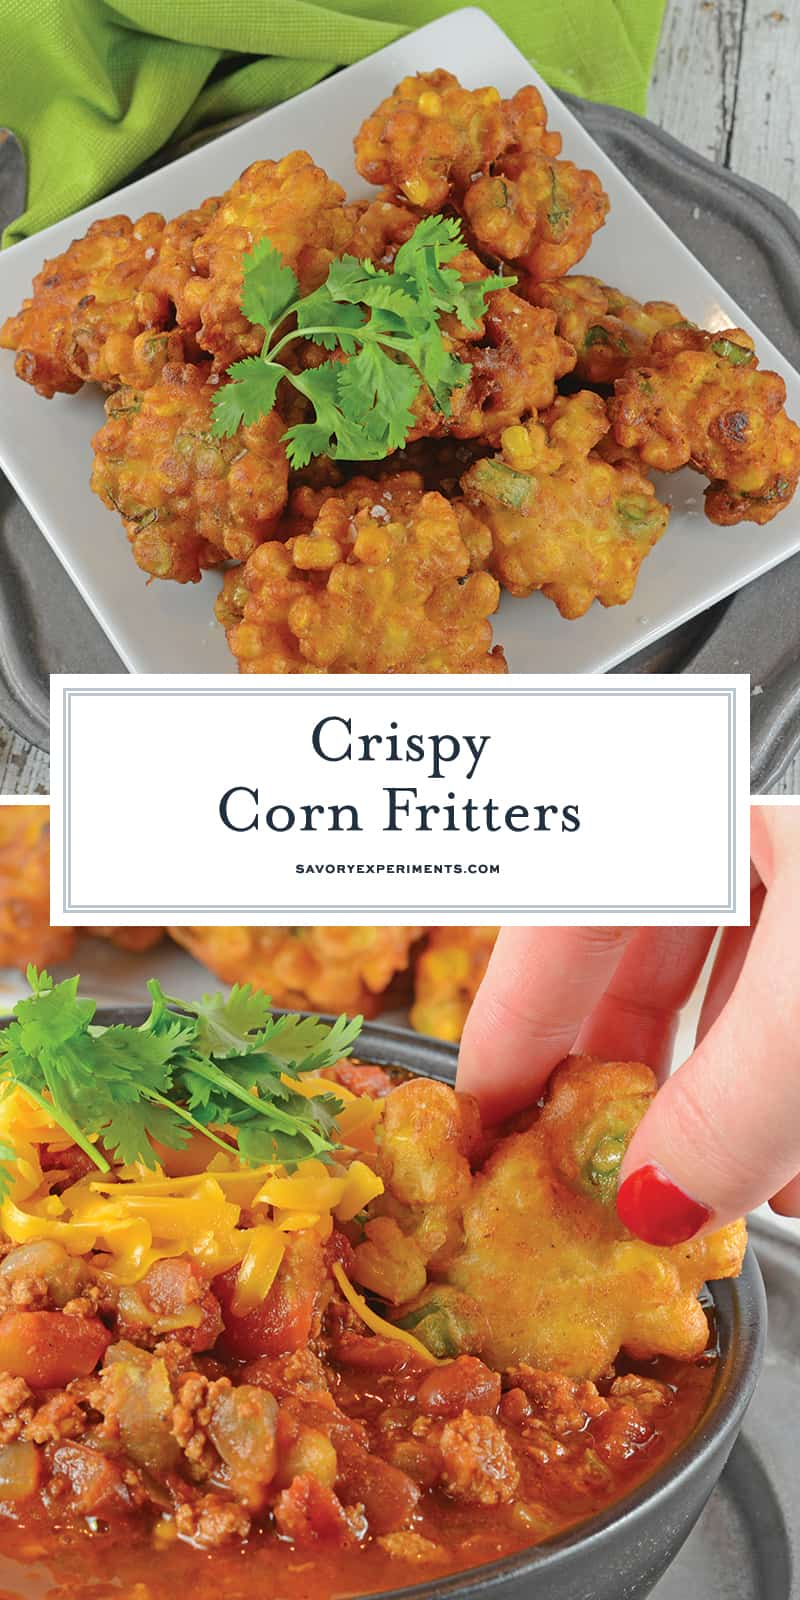 Easy Corn Fritters are lightly fried with scallions, cumin & white pepper. They're deliciously crispy! No matter how you serve these they are sure to be a hit! #easycornfritters #howtomakecornfritters #cornfrittersrecipe www.savoryexperiments.com